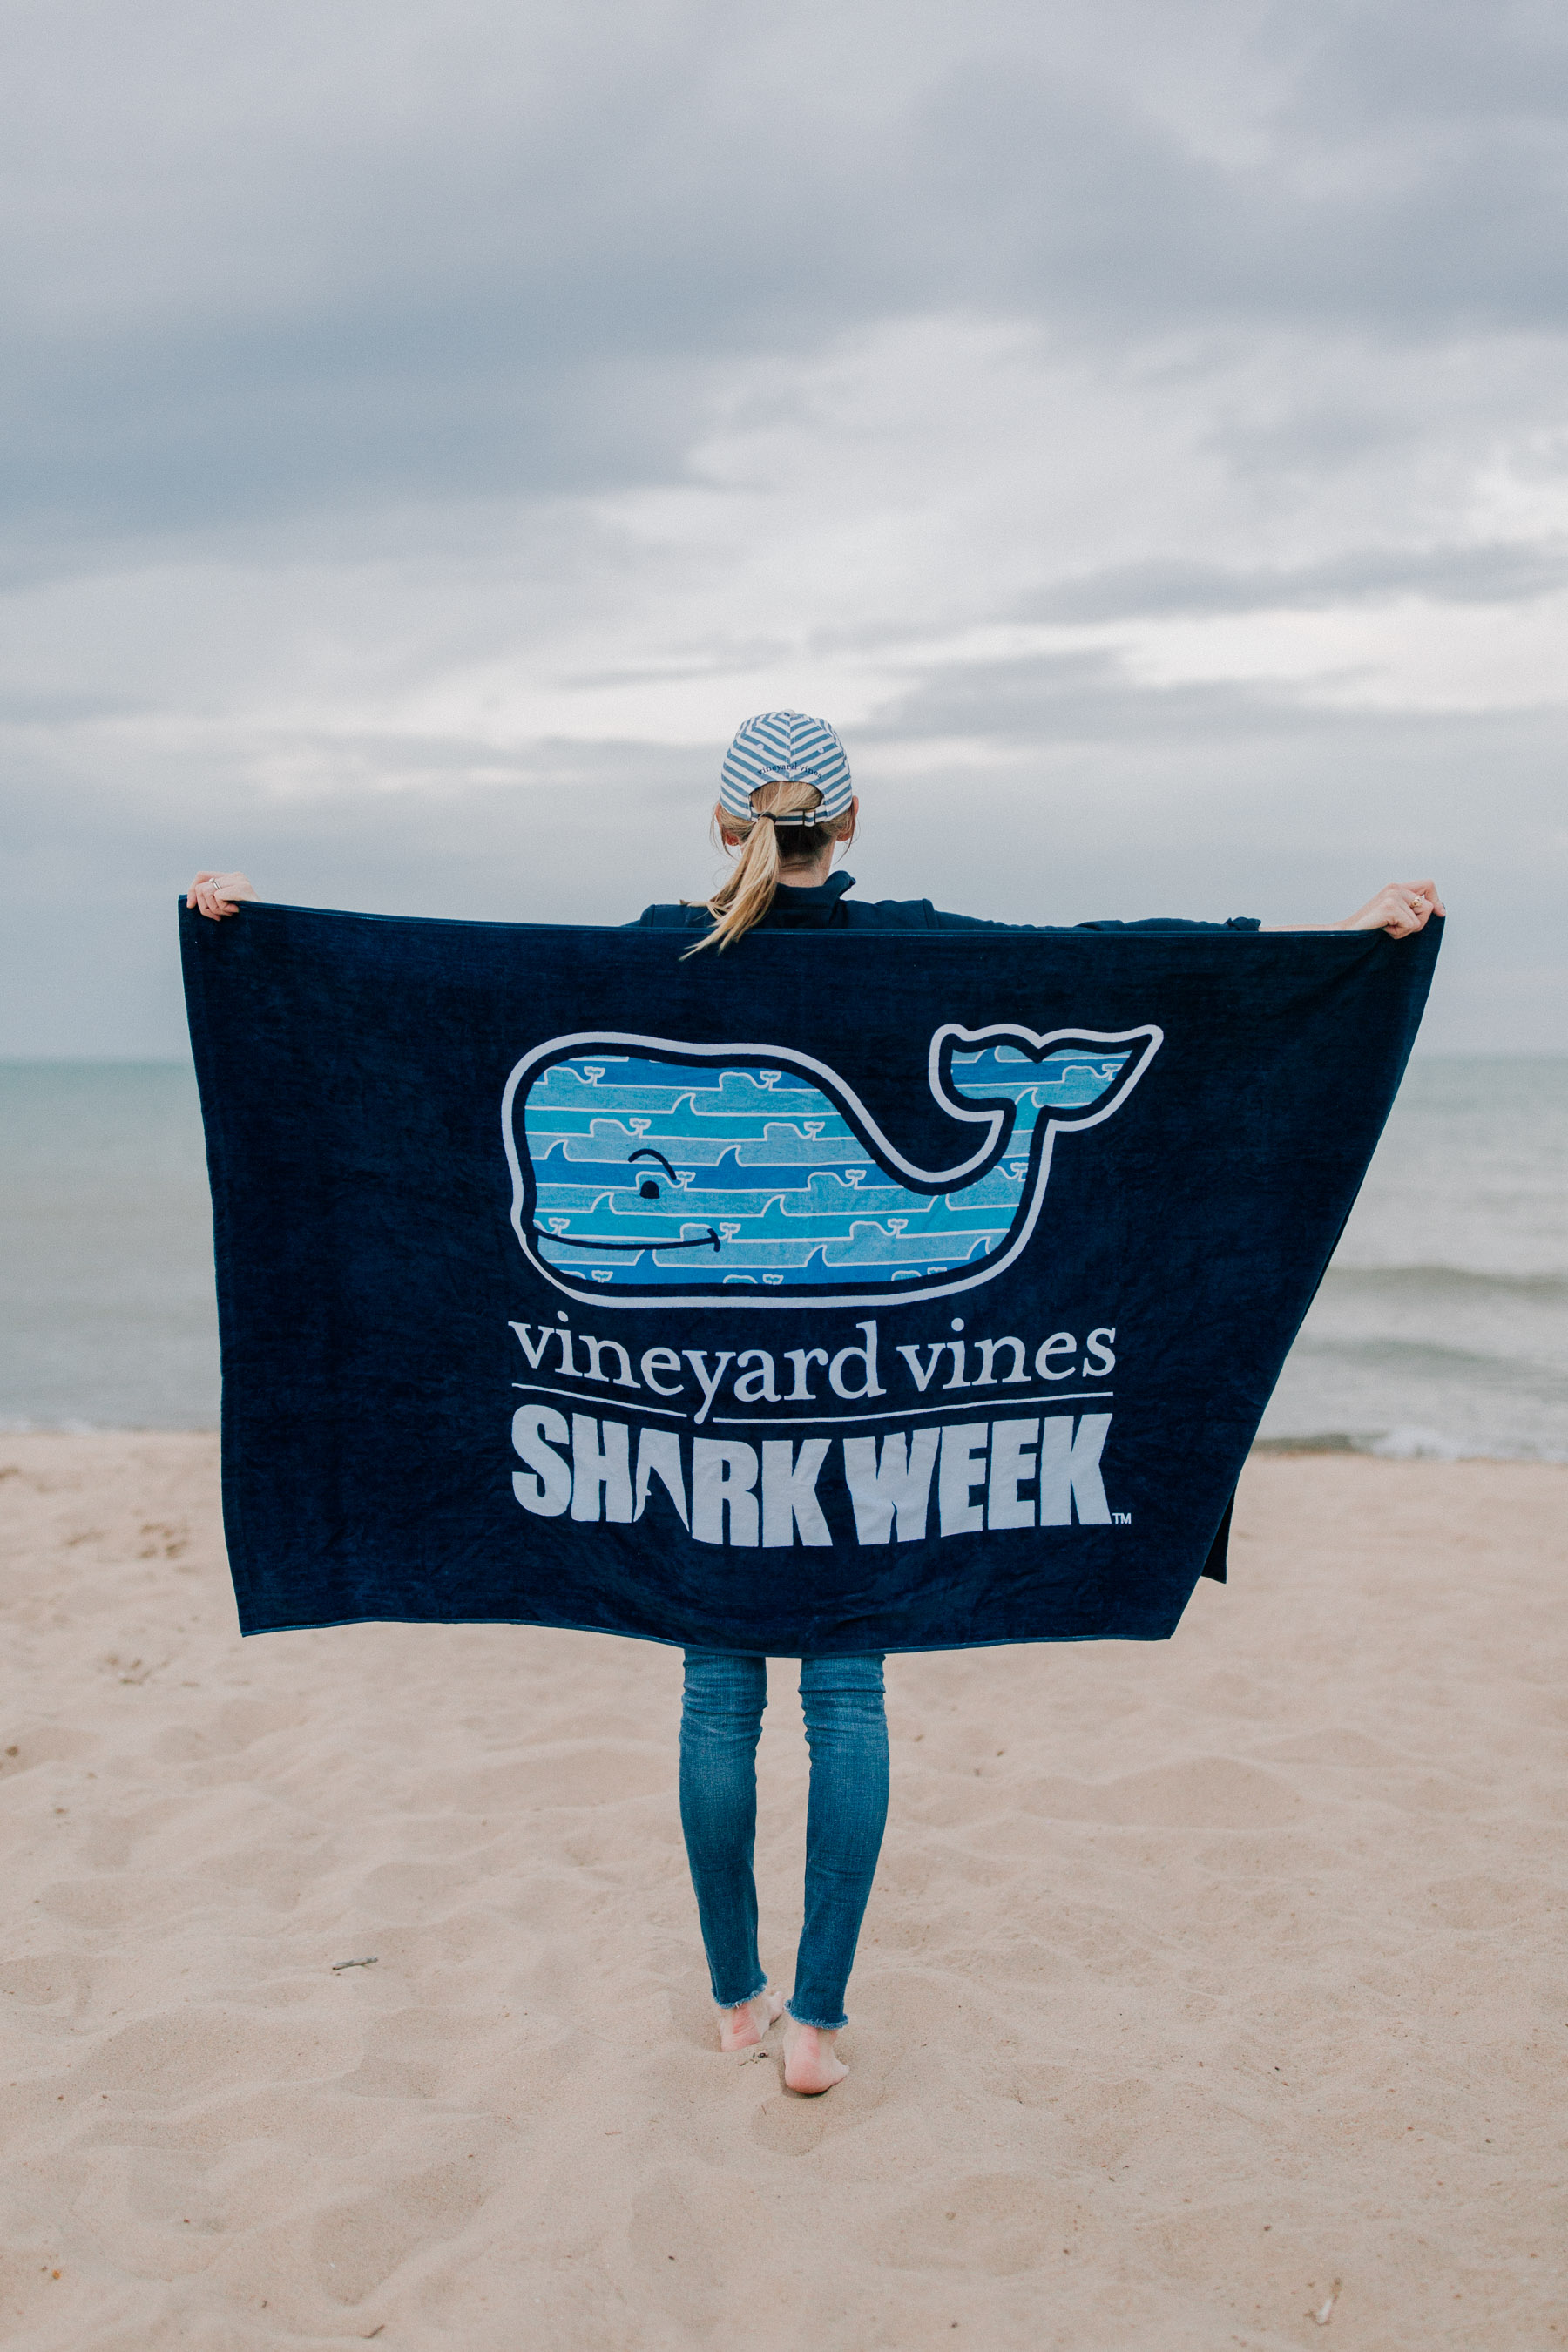 Vineyard Vines - Shark Week